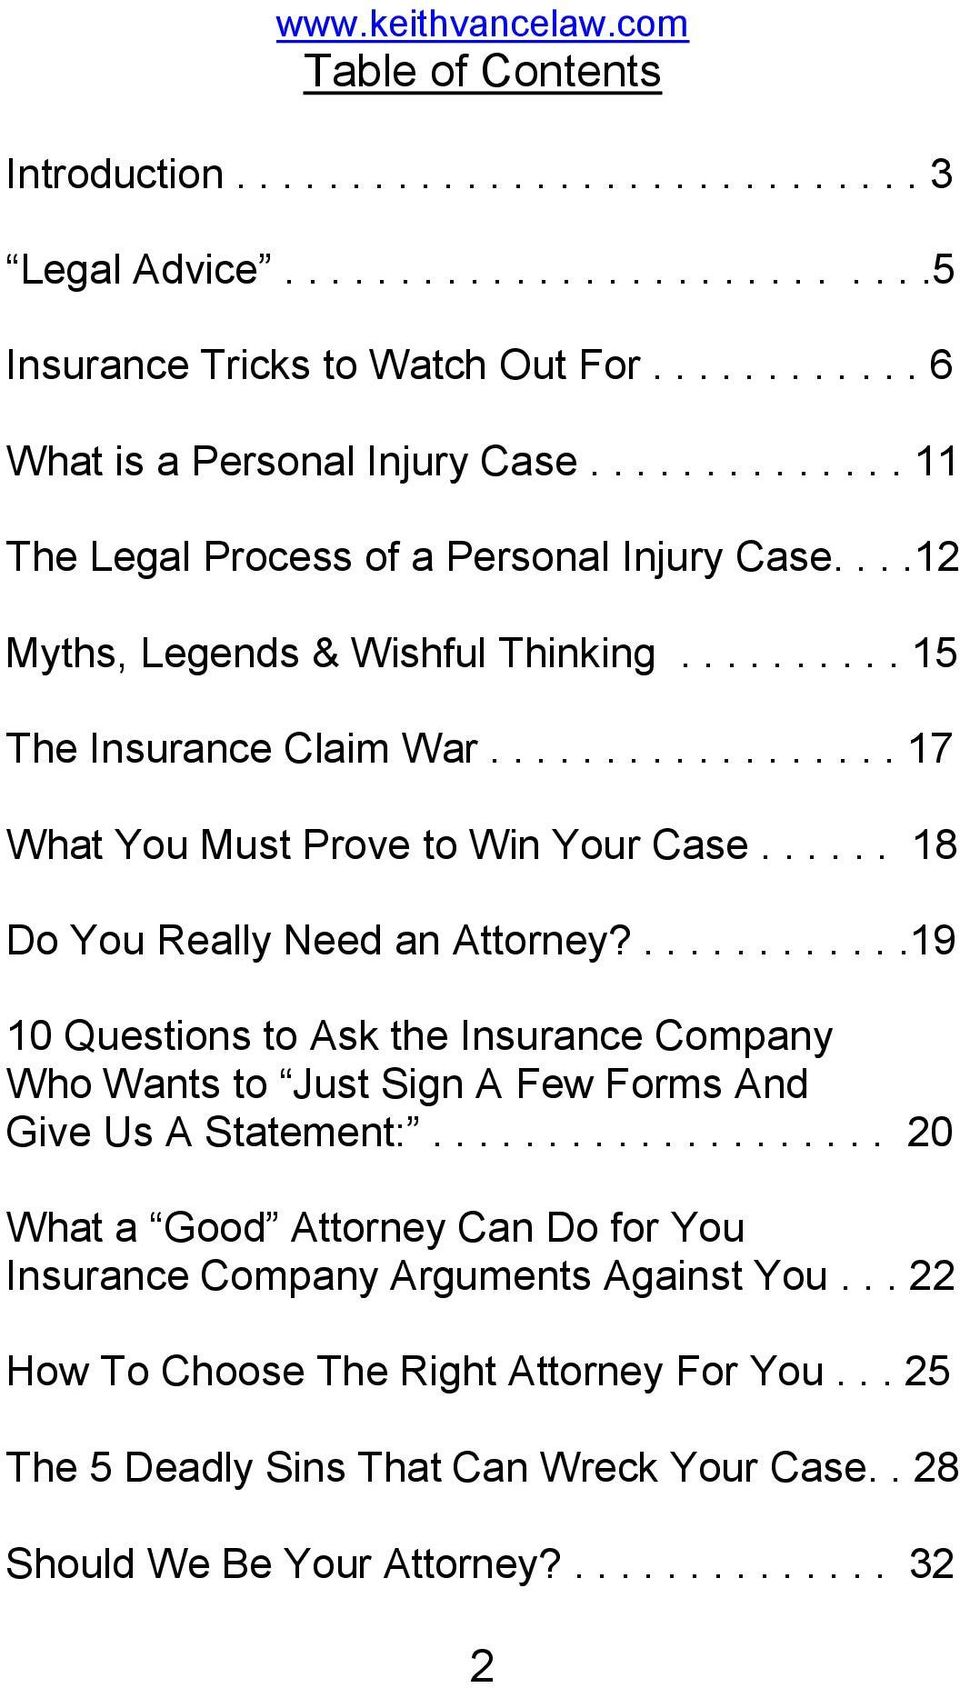 ..... 18 Do You Really Need an Attorney?............19 10 Questions to Ask the Insurance Company Who Wants to Just Sign A Few Forms And Give Us A Statement:.